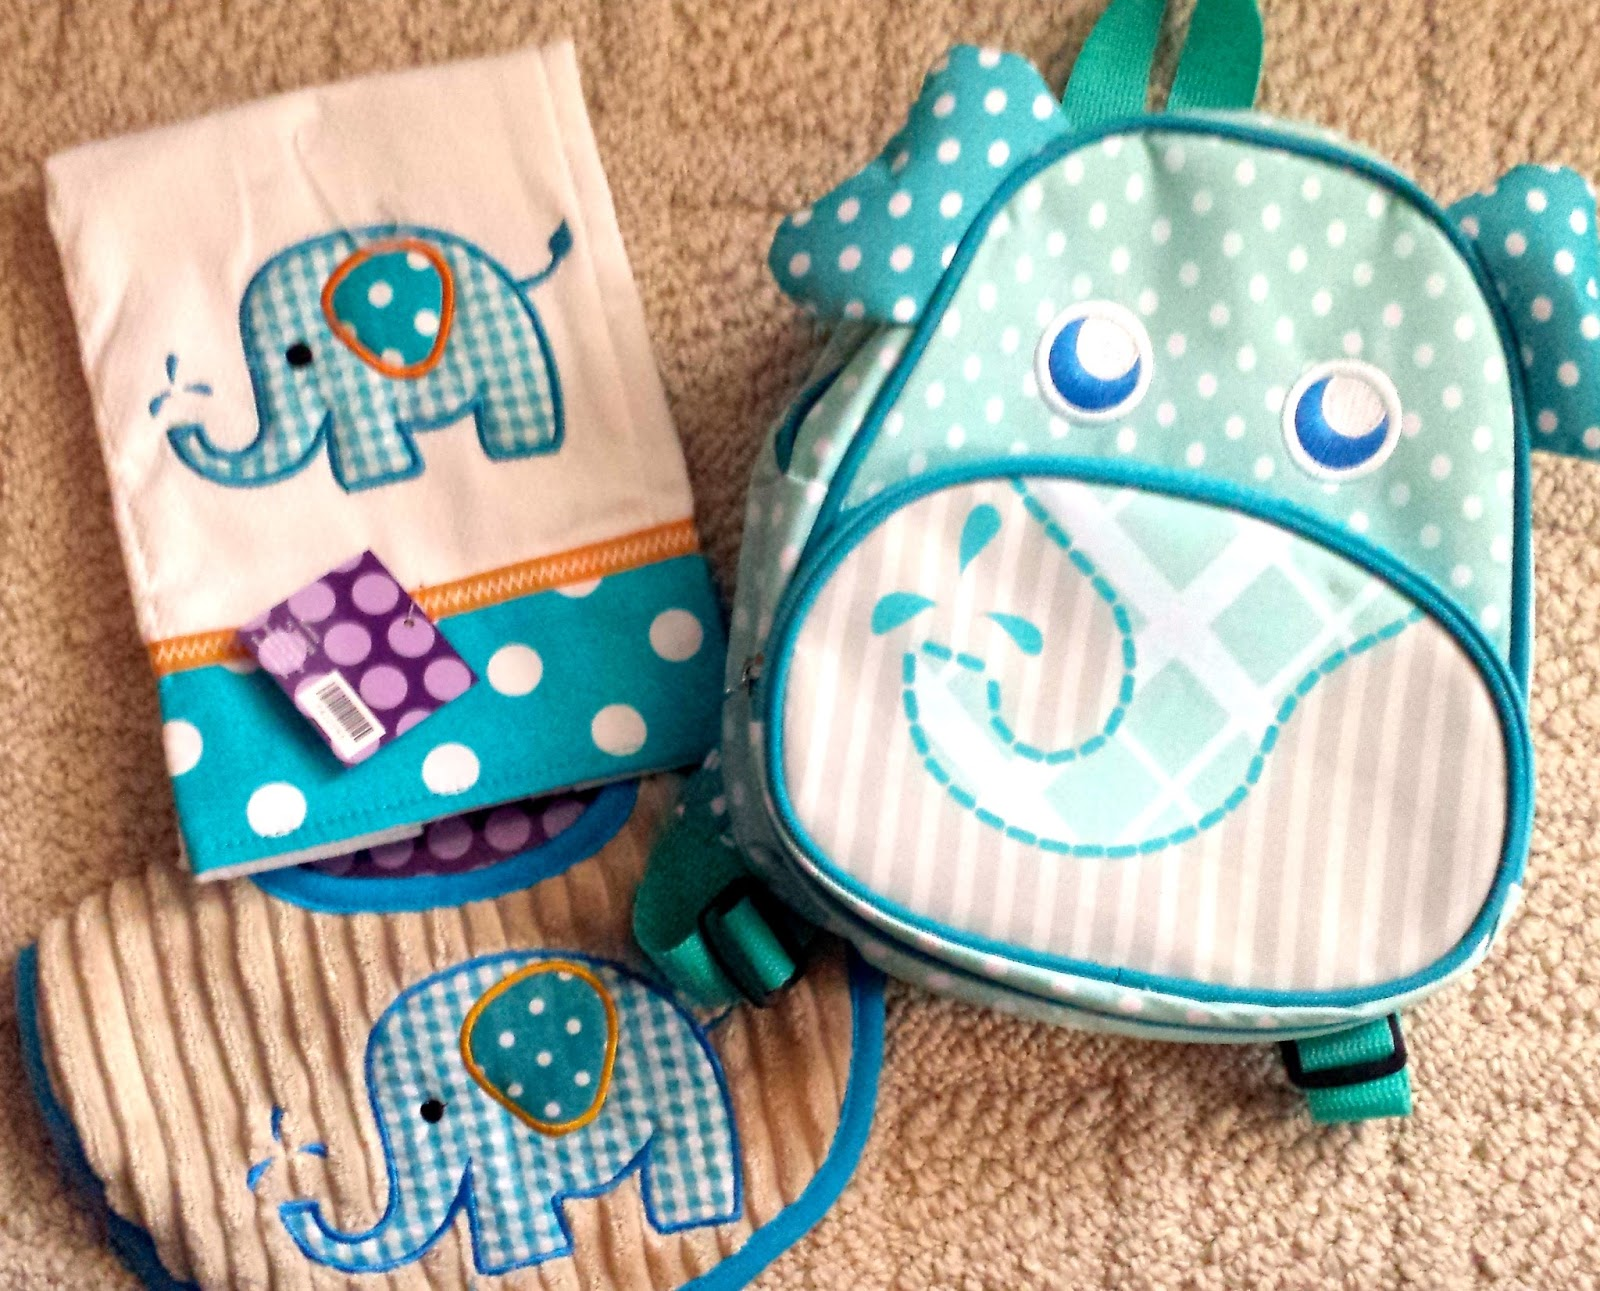 Homemadeville your place for homemade inspiration tips for elephant baby items backpack burp cloth bib paci holder not shown negle Images